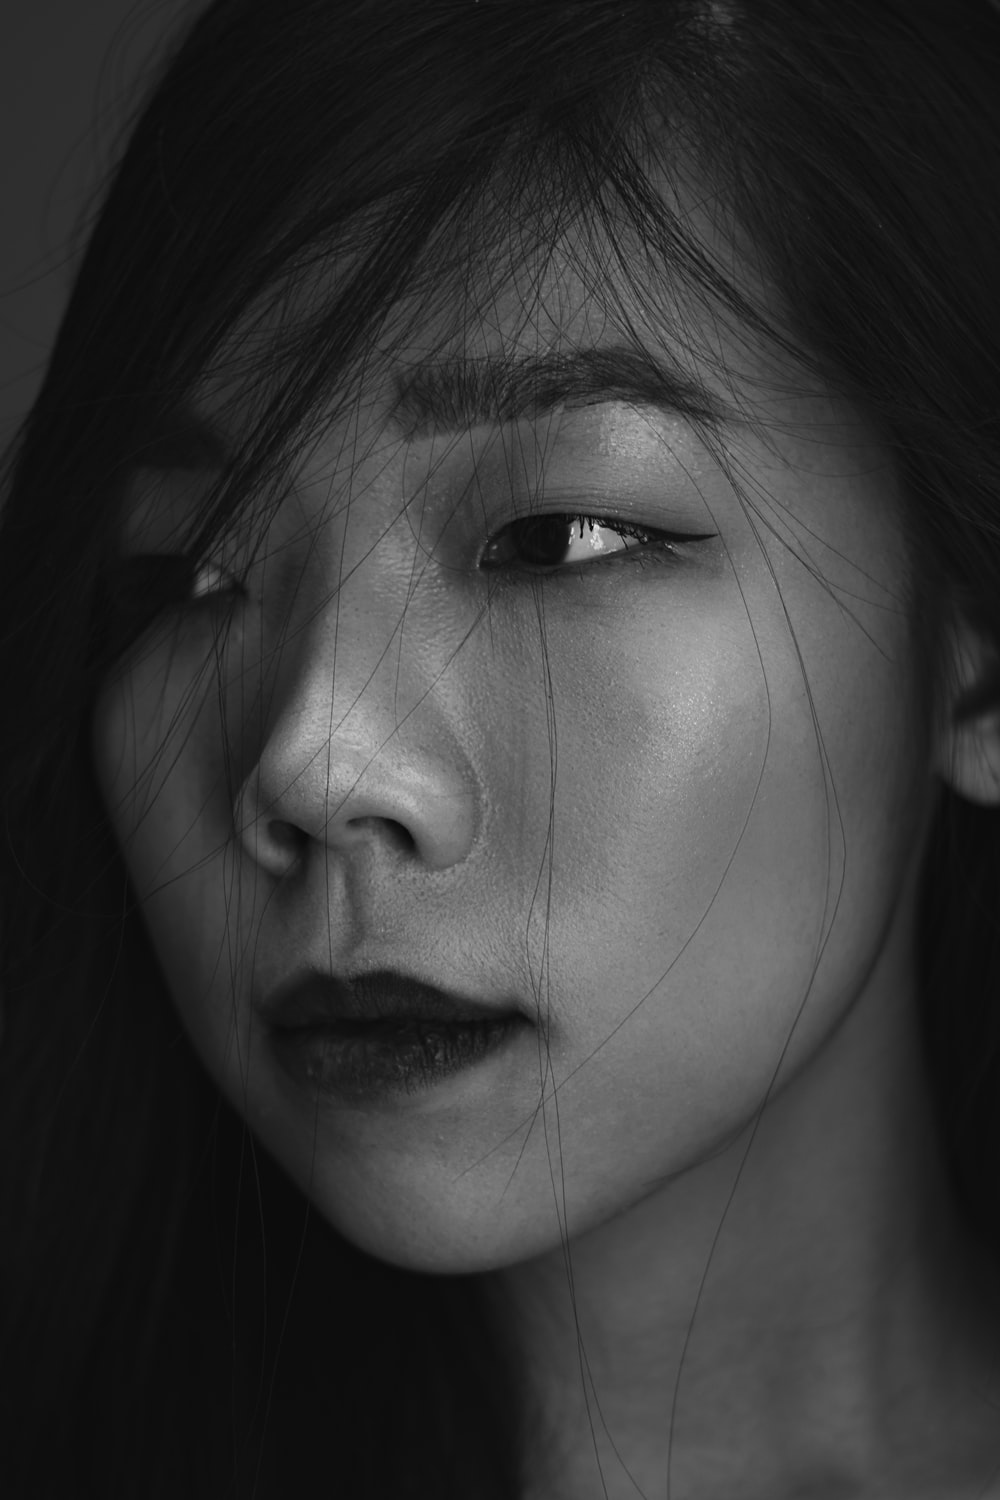 grayscale photo of girls face